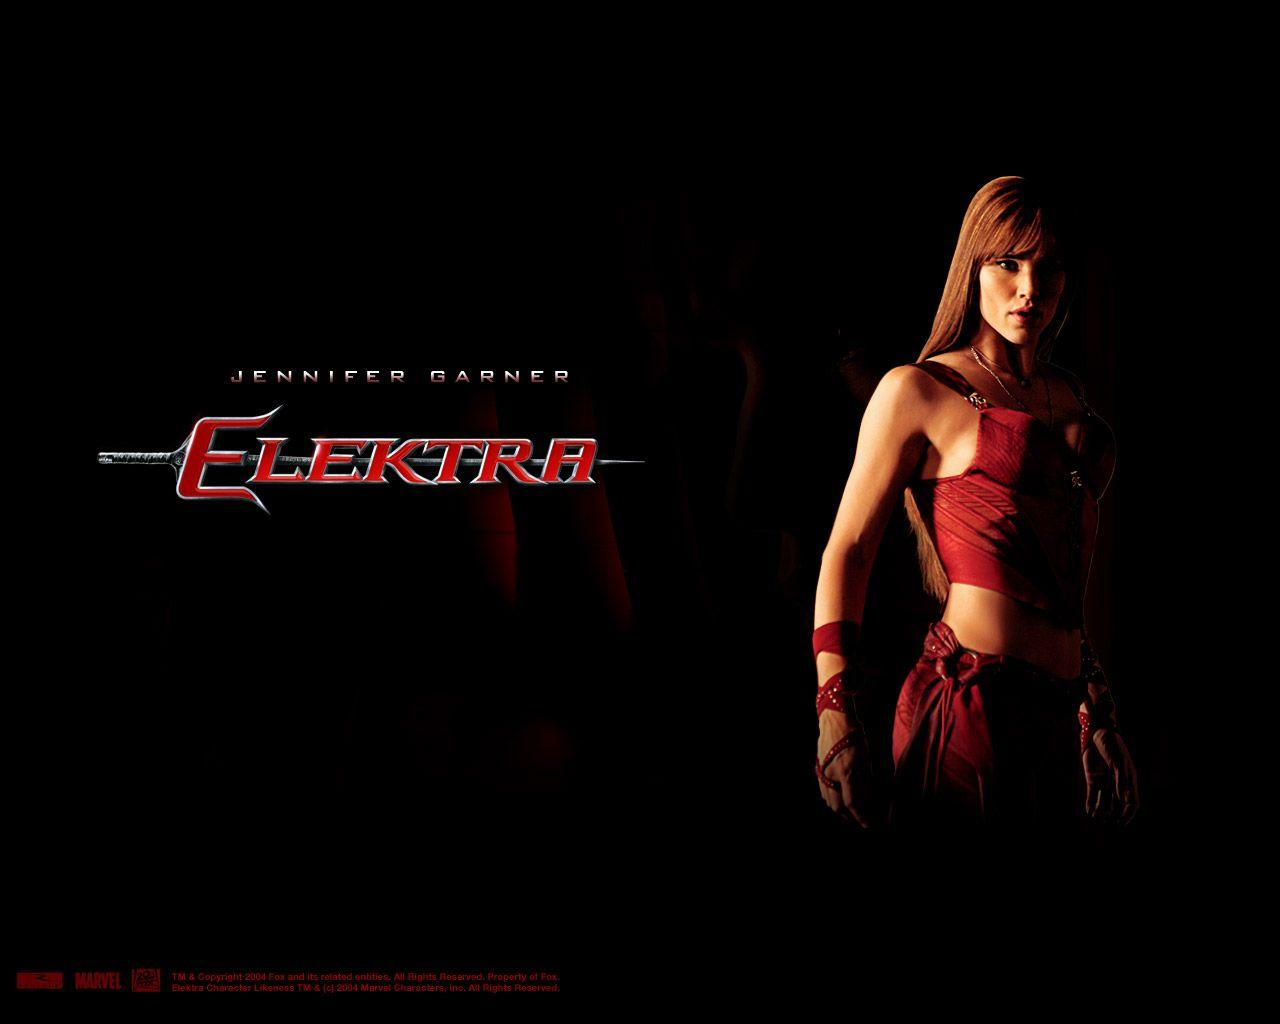 Gallery For: Elektra Wallpapers, Elektra Wallpapers, Top 49 HQ